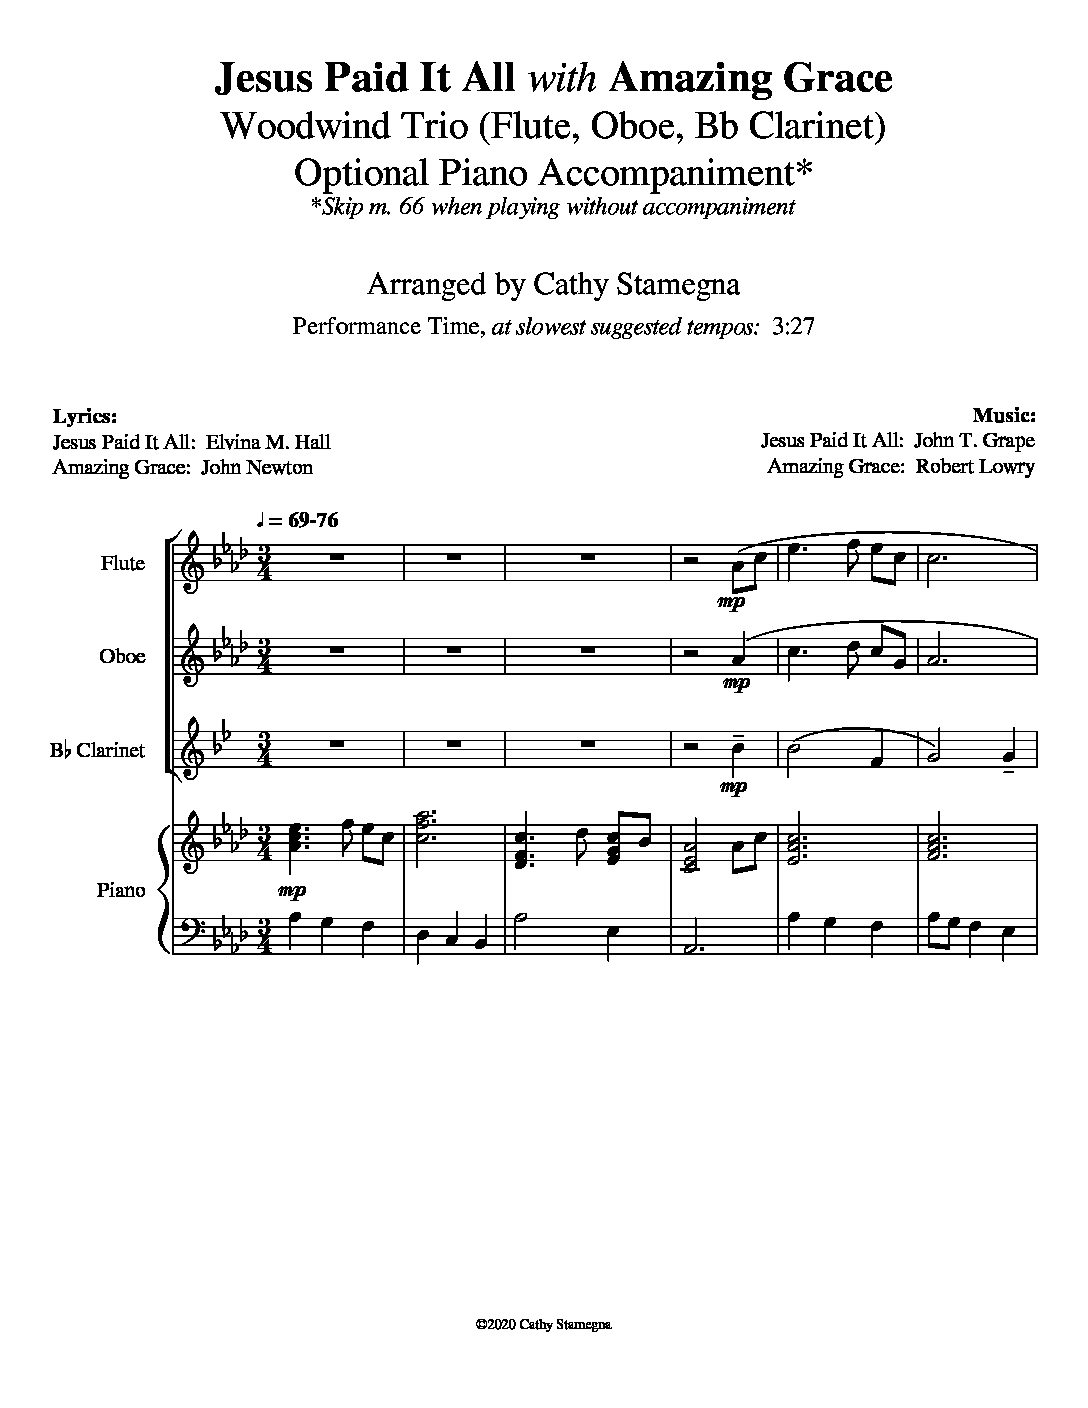 """Jesus Paid It All (with """"Amazing Grace"""") – Woodwind Trio, Optional Piano Accompaniment"""